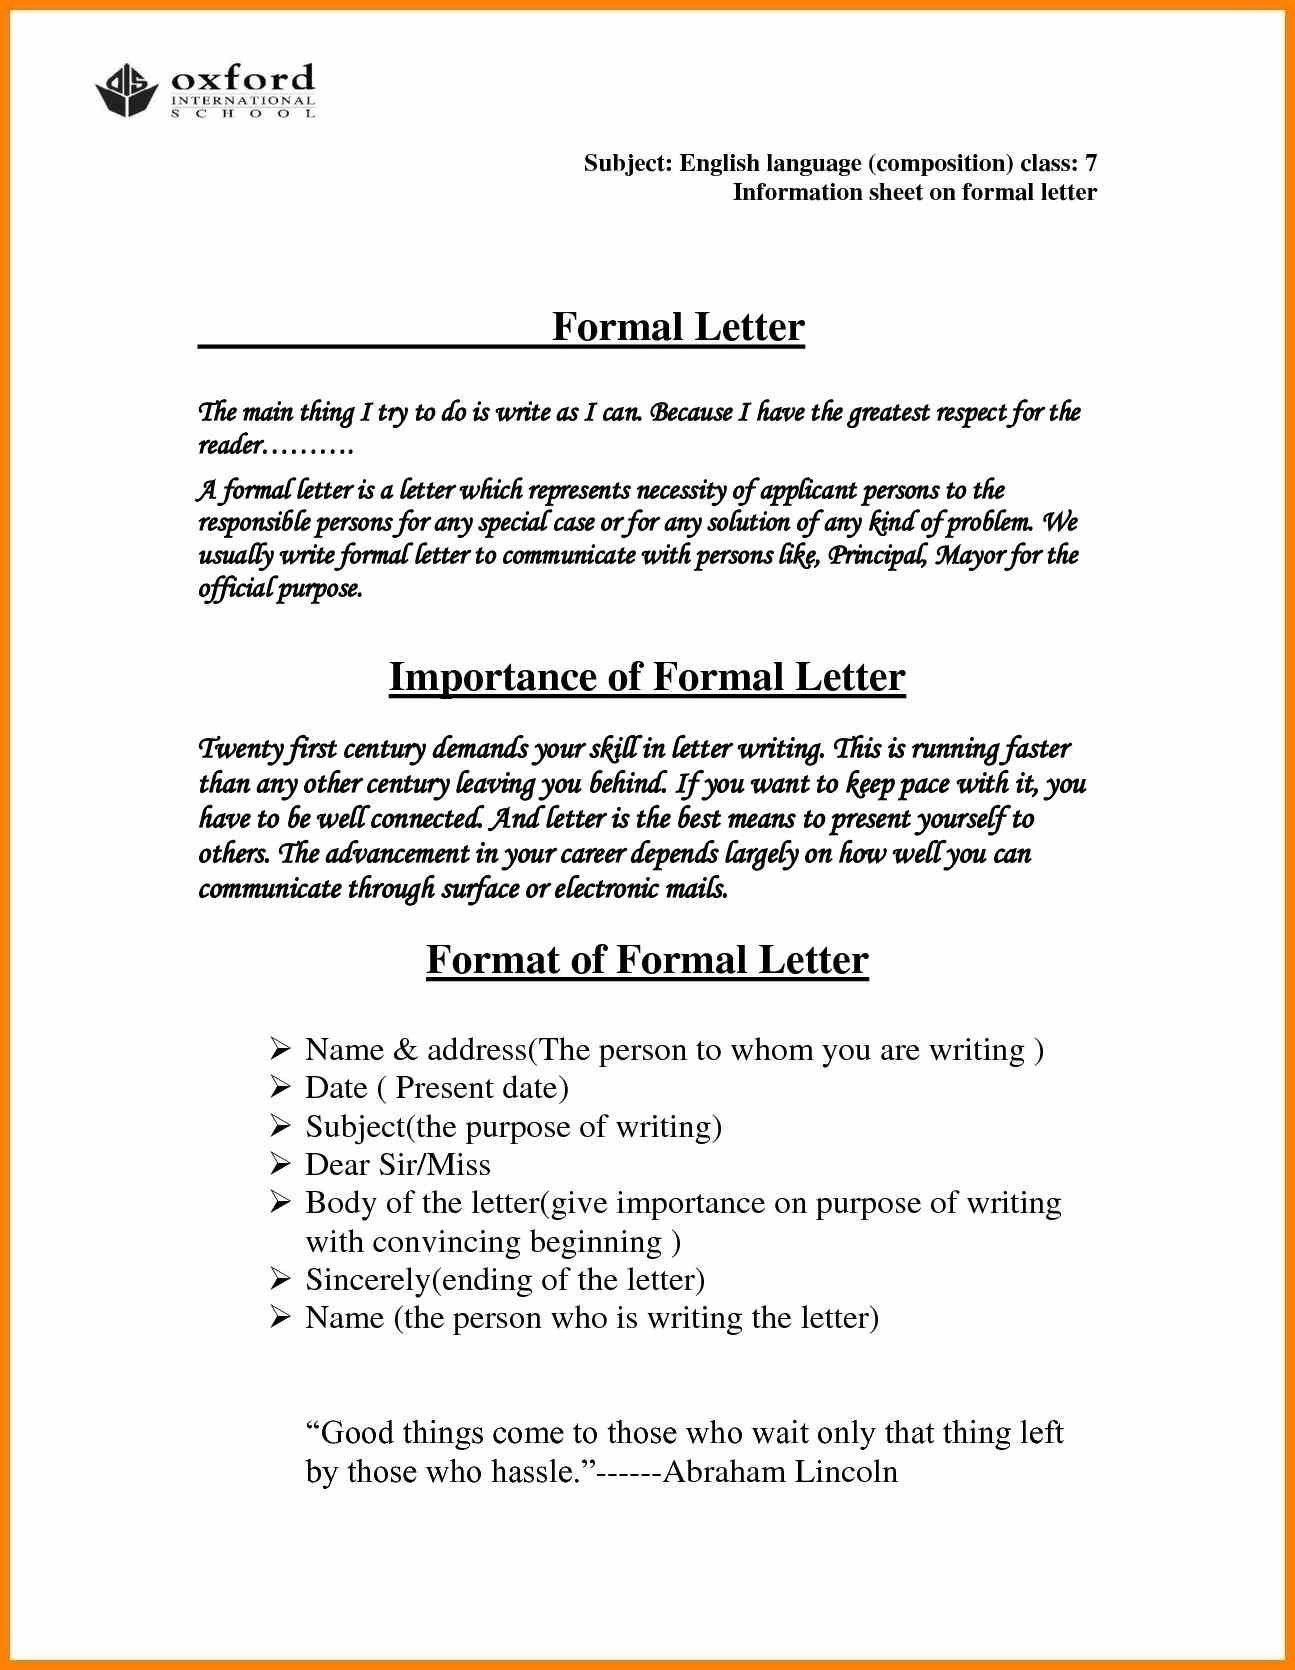 You Can See This New formal Letter format According to